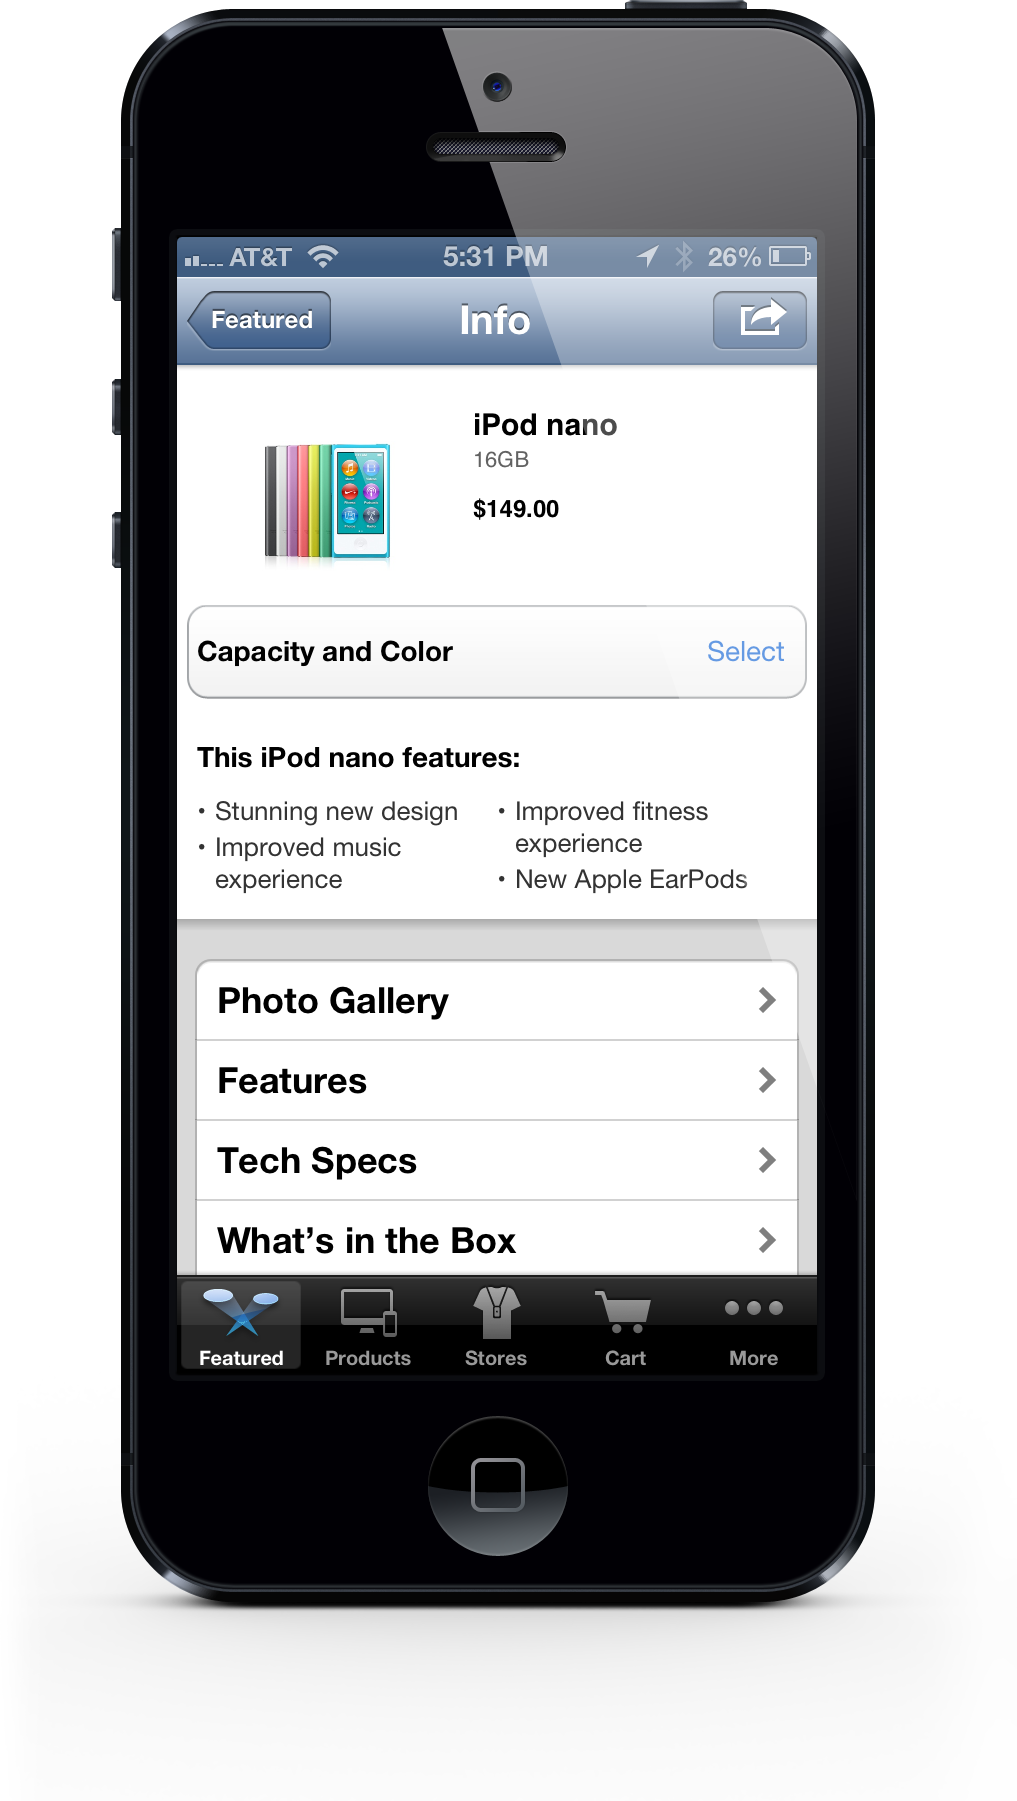 Apple Store App - iPhone 5